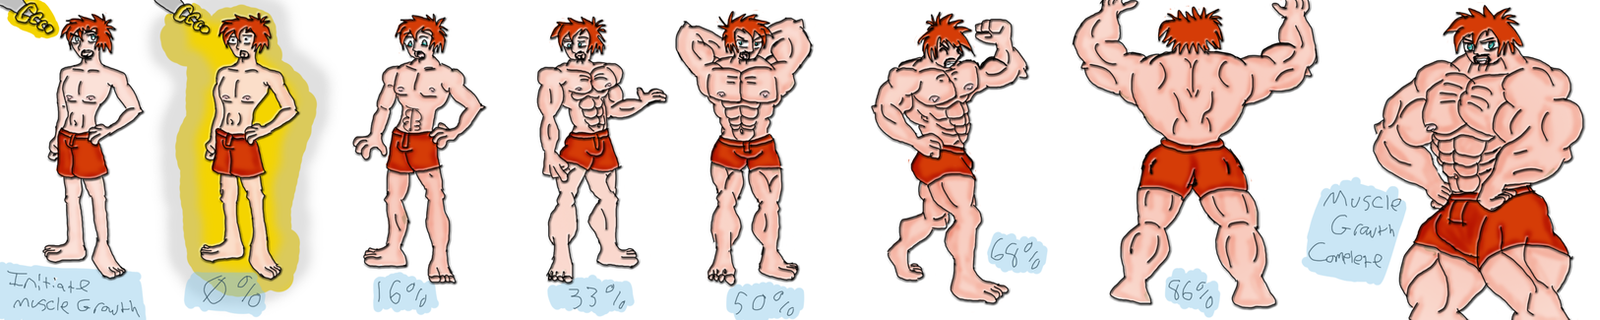 dl4 contest: muscle growth by j3c3000 on deviantart, Muscles